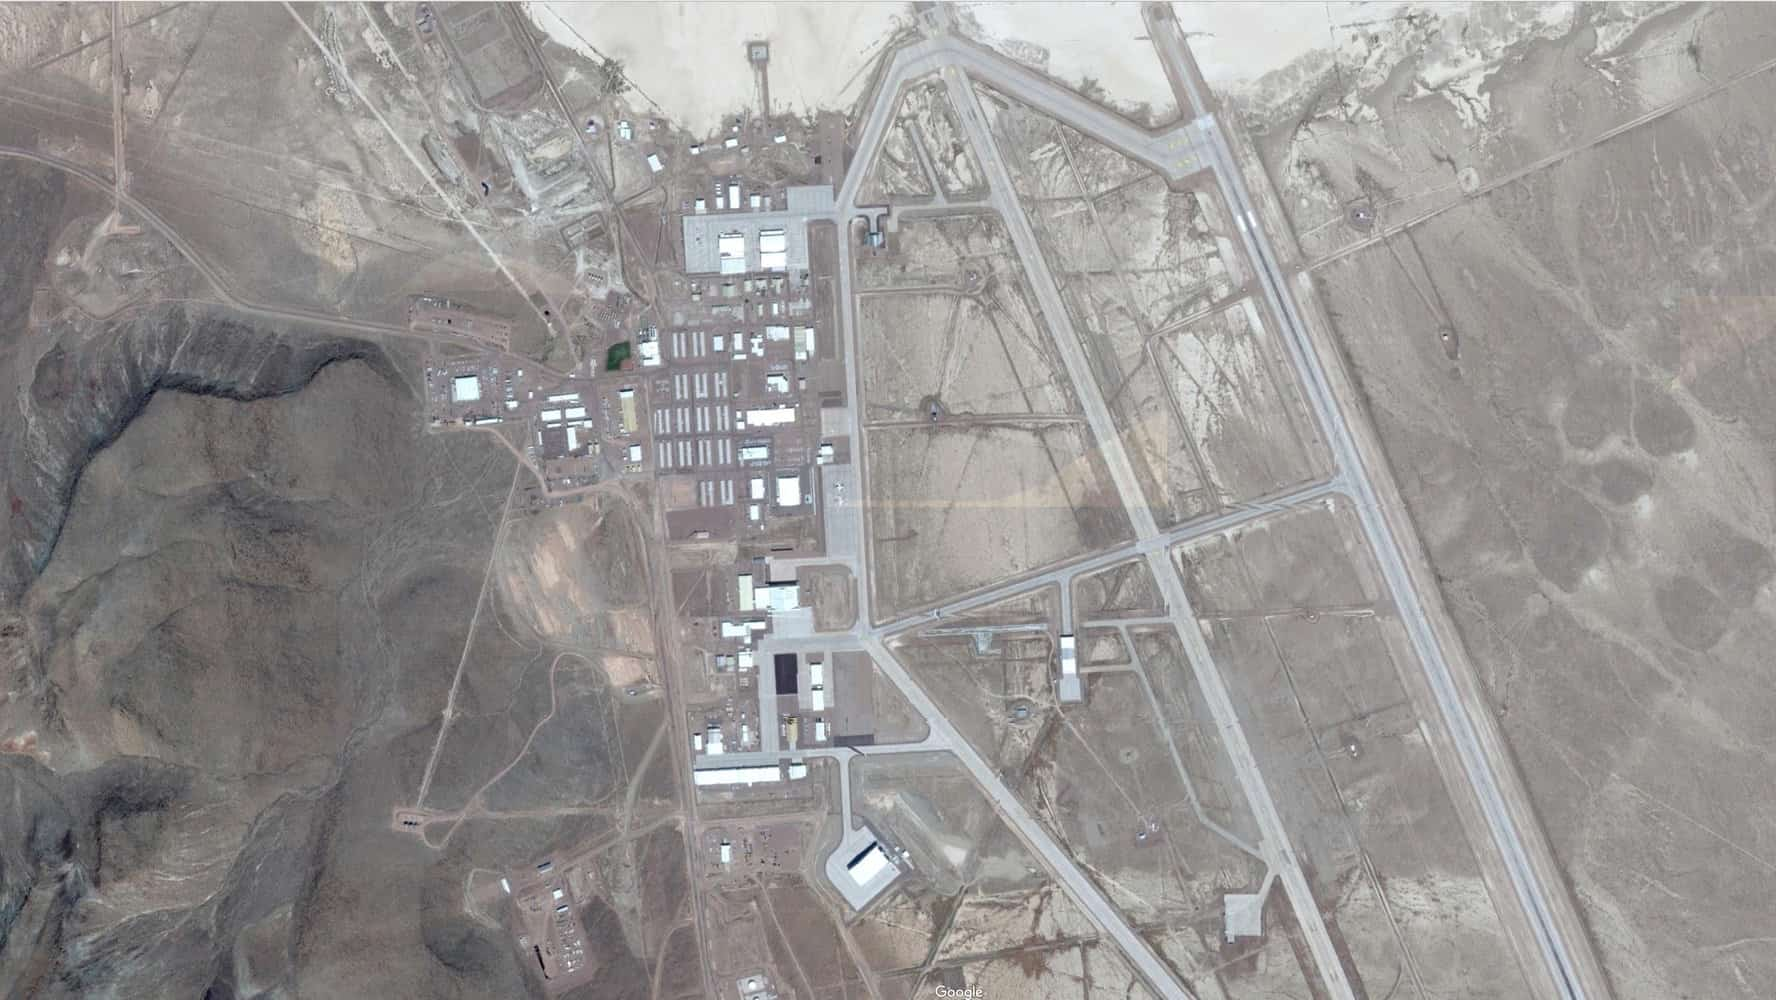 In un milione pronti a invadere l'Area 51: